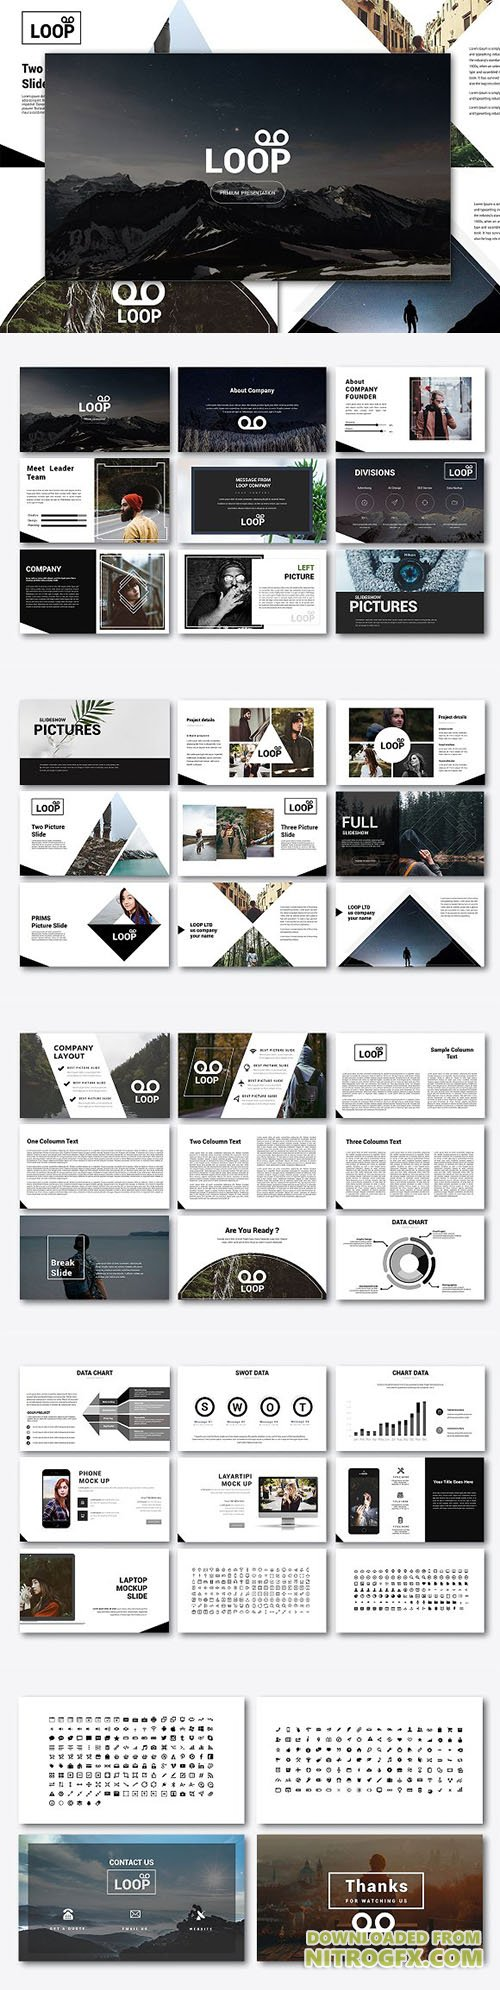 Powerpoint template size pixels image collections templates powerpoint template size pixels choice image templates example powerpoint template size pixels gallery templates example free toneelgroepblik Gallery